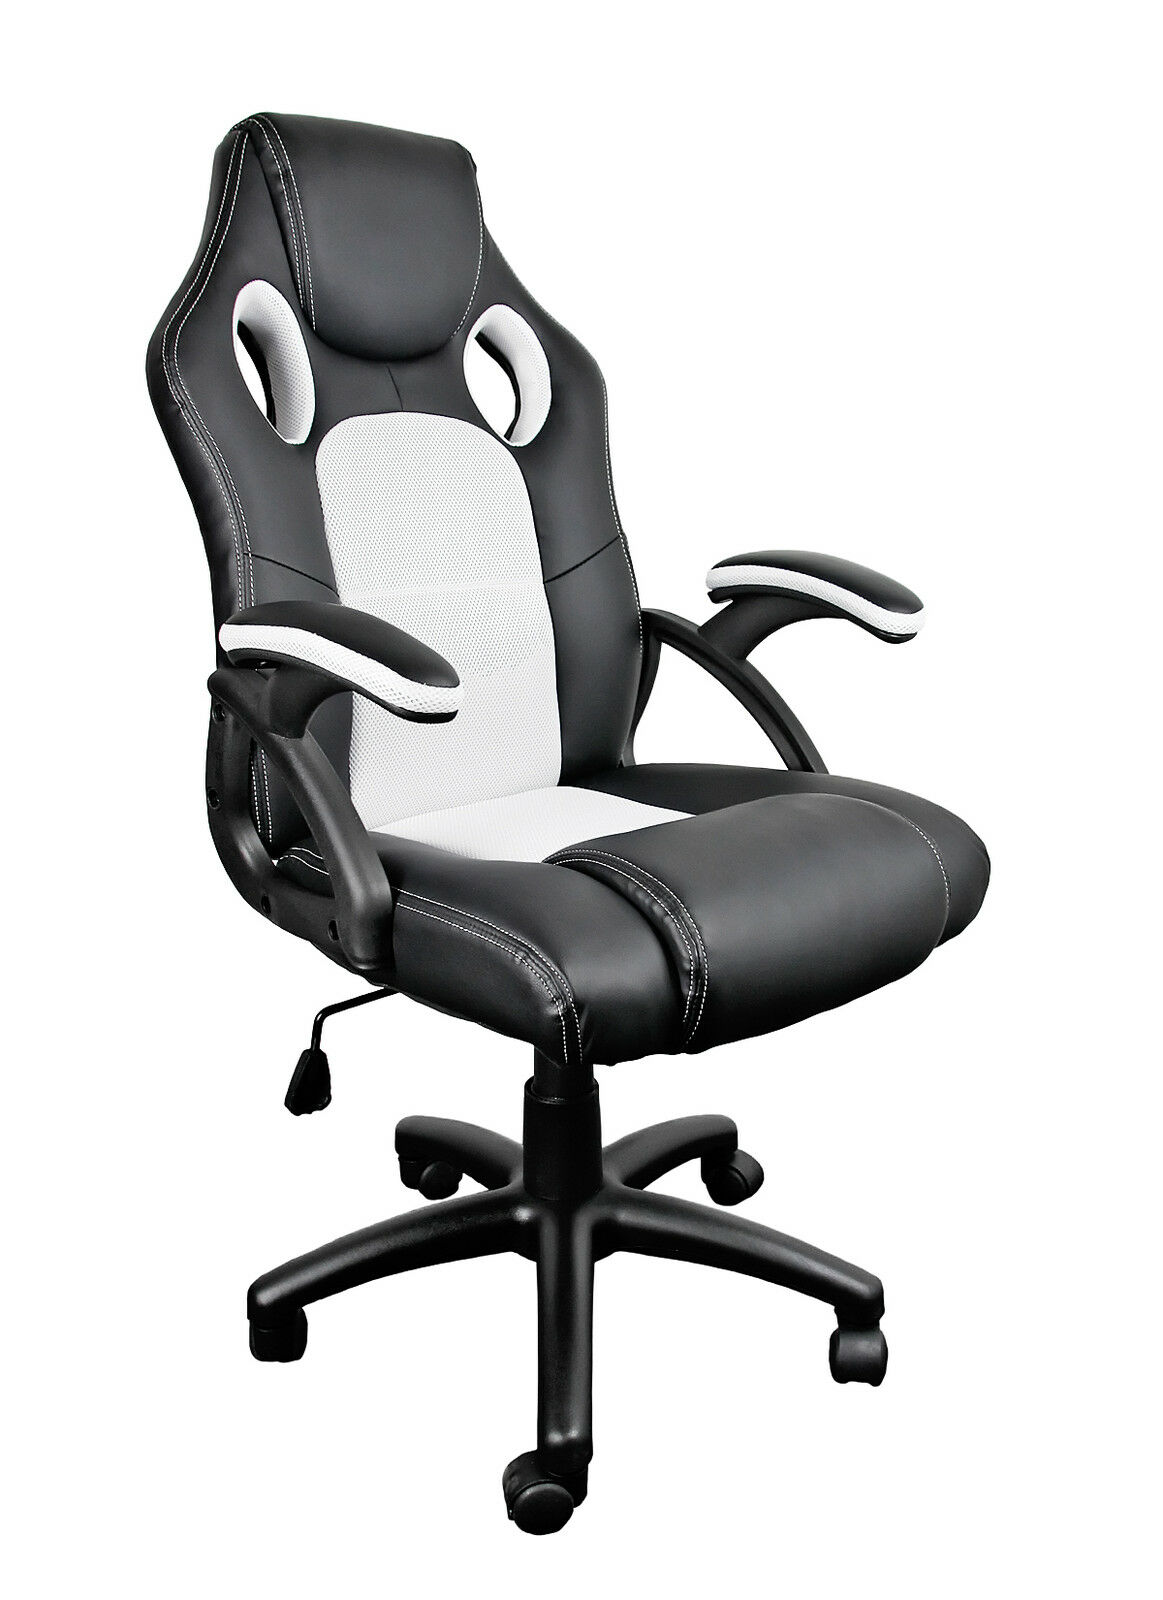 leather bucket chair swivel bearing racing sport computer desk gaming office seat